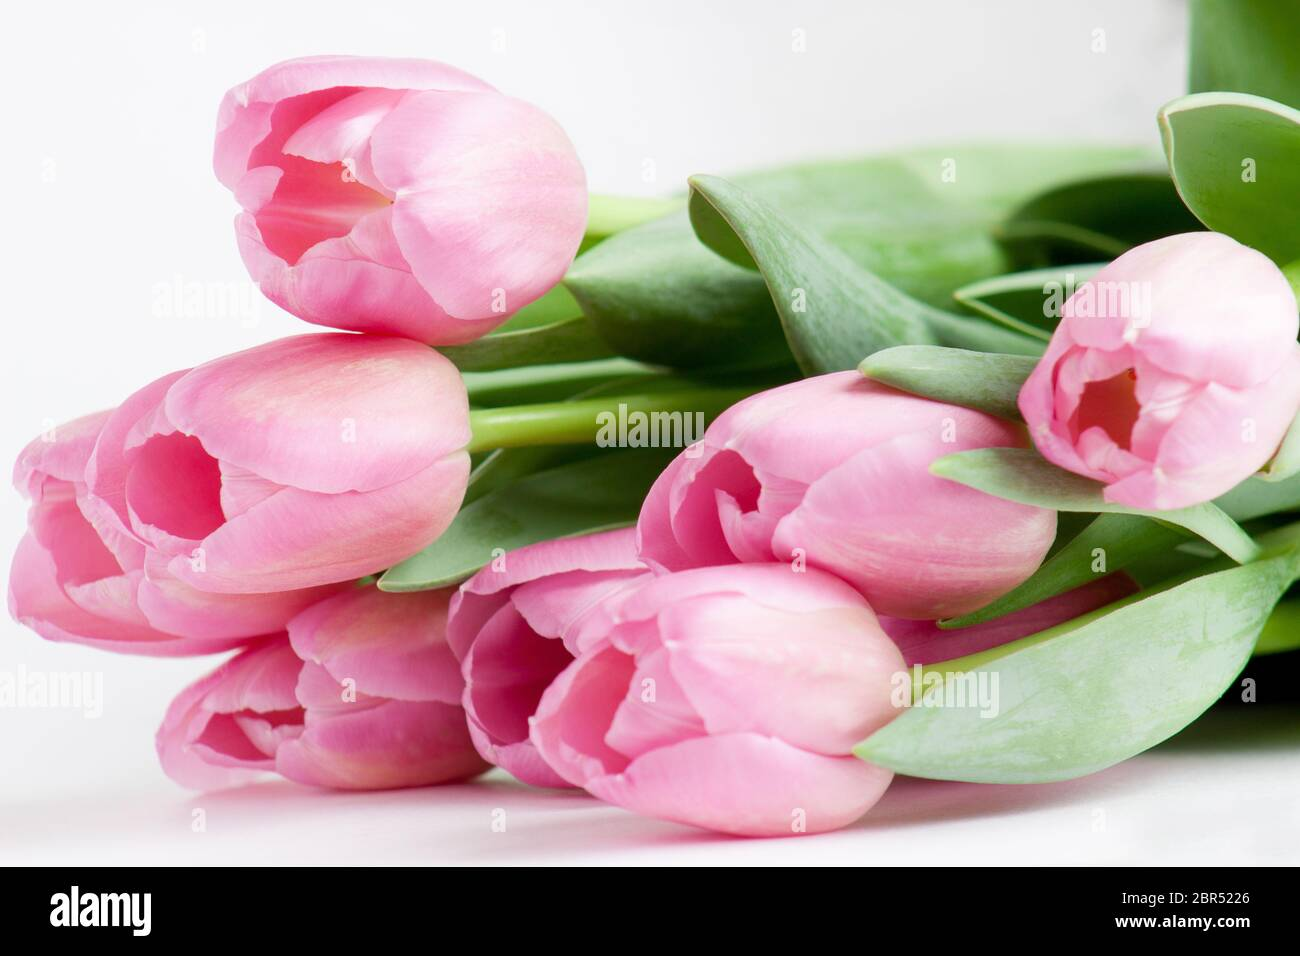 Group of pink tulips are lying on white background. Live nature. Stock Photo